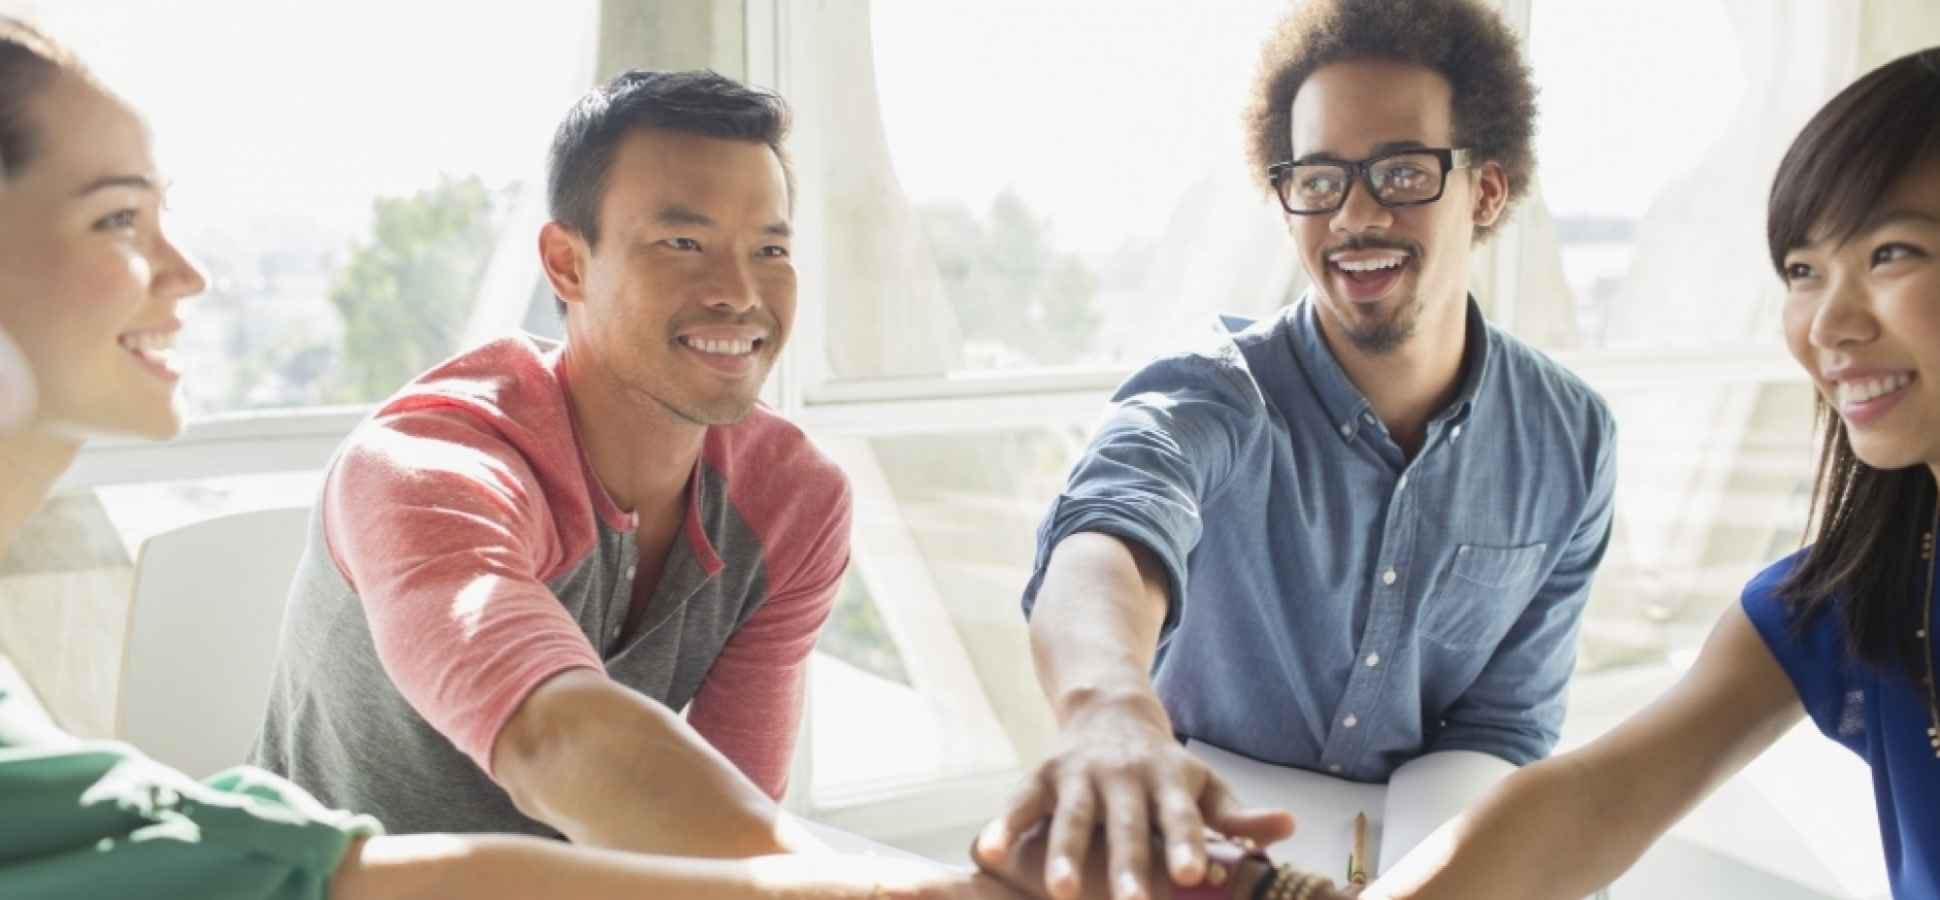 9 Positive Vibes You Can Pass On to Others | Inc com